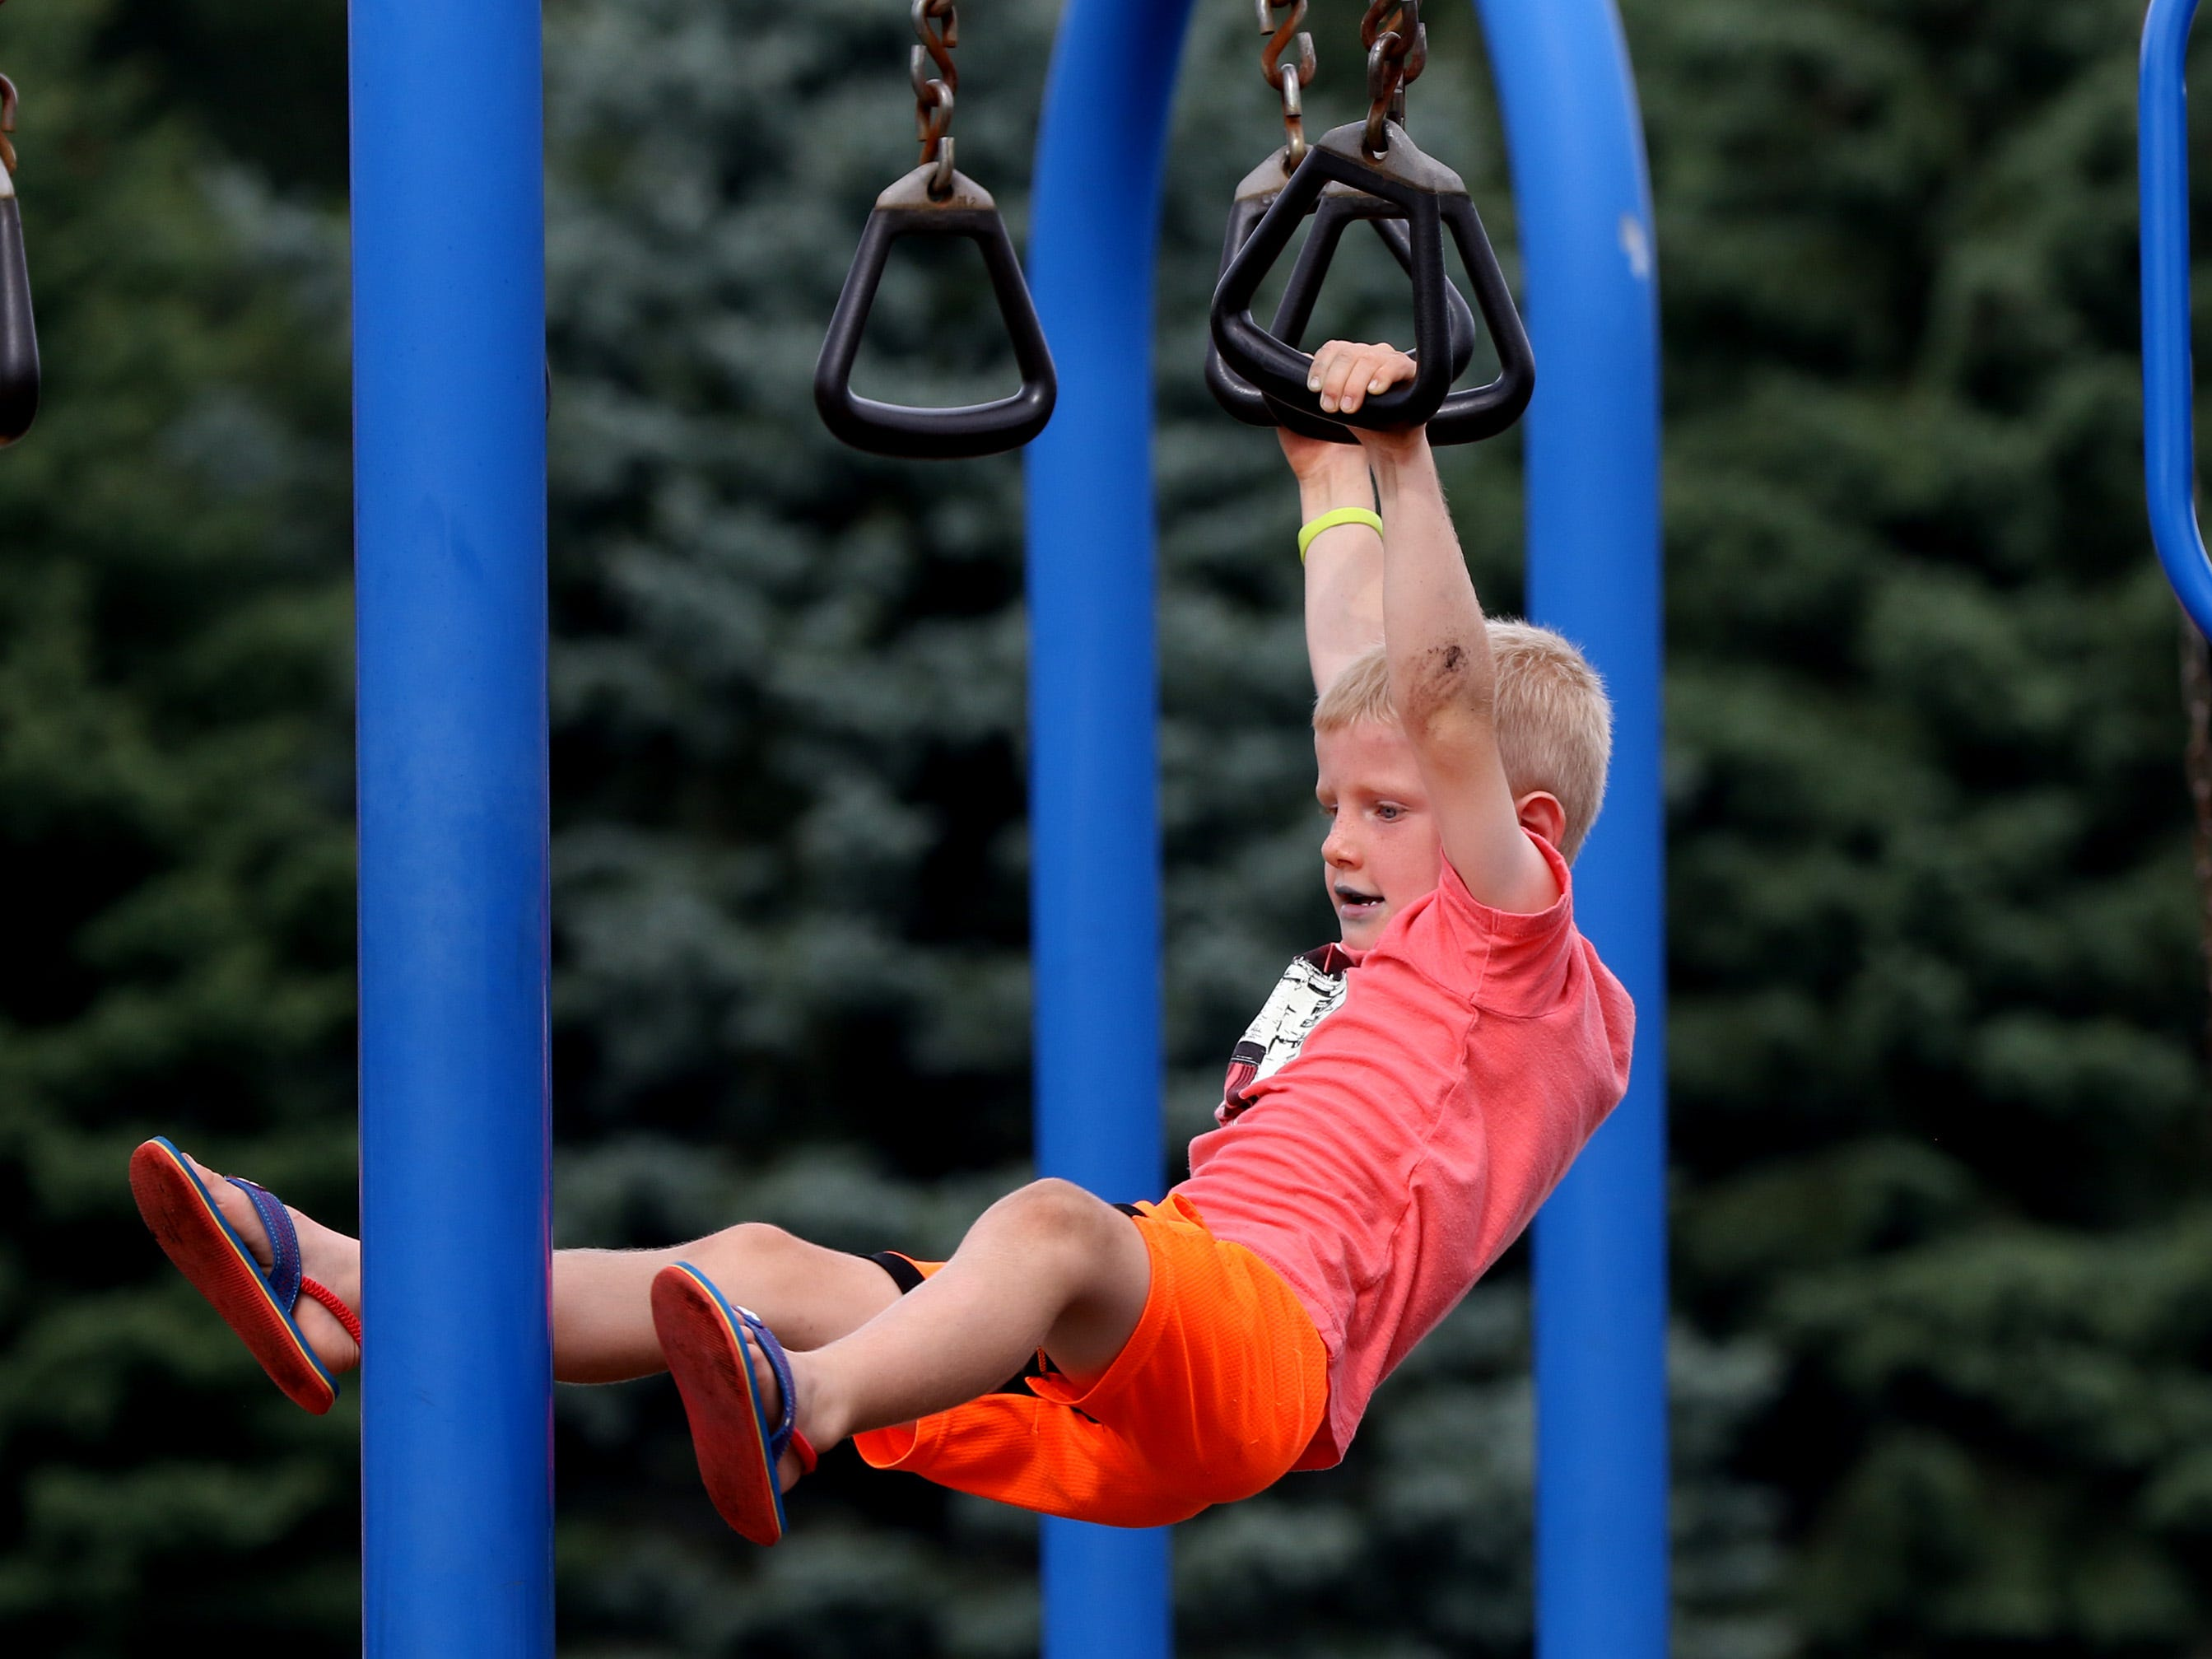 Ian Weber, 5, of Germantown finds the playground entertaining at Bonifest at St. Boniface Parish and School on Sept. 2.